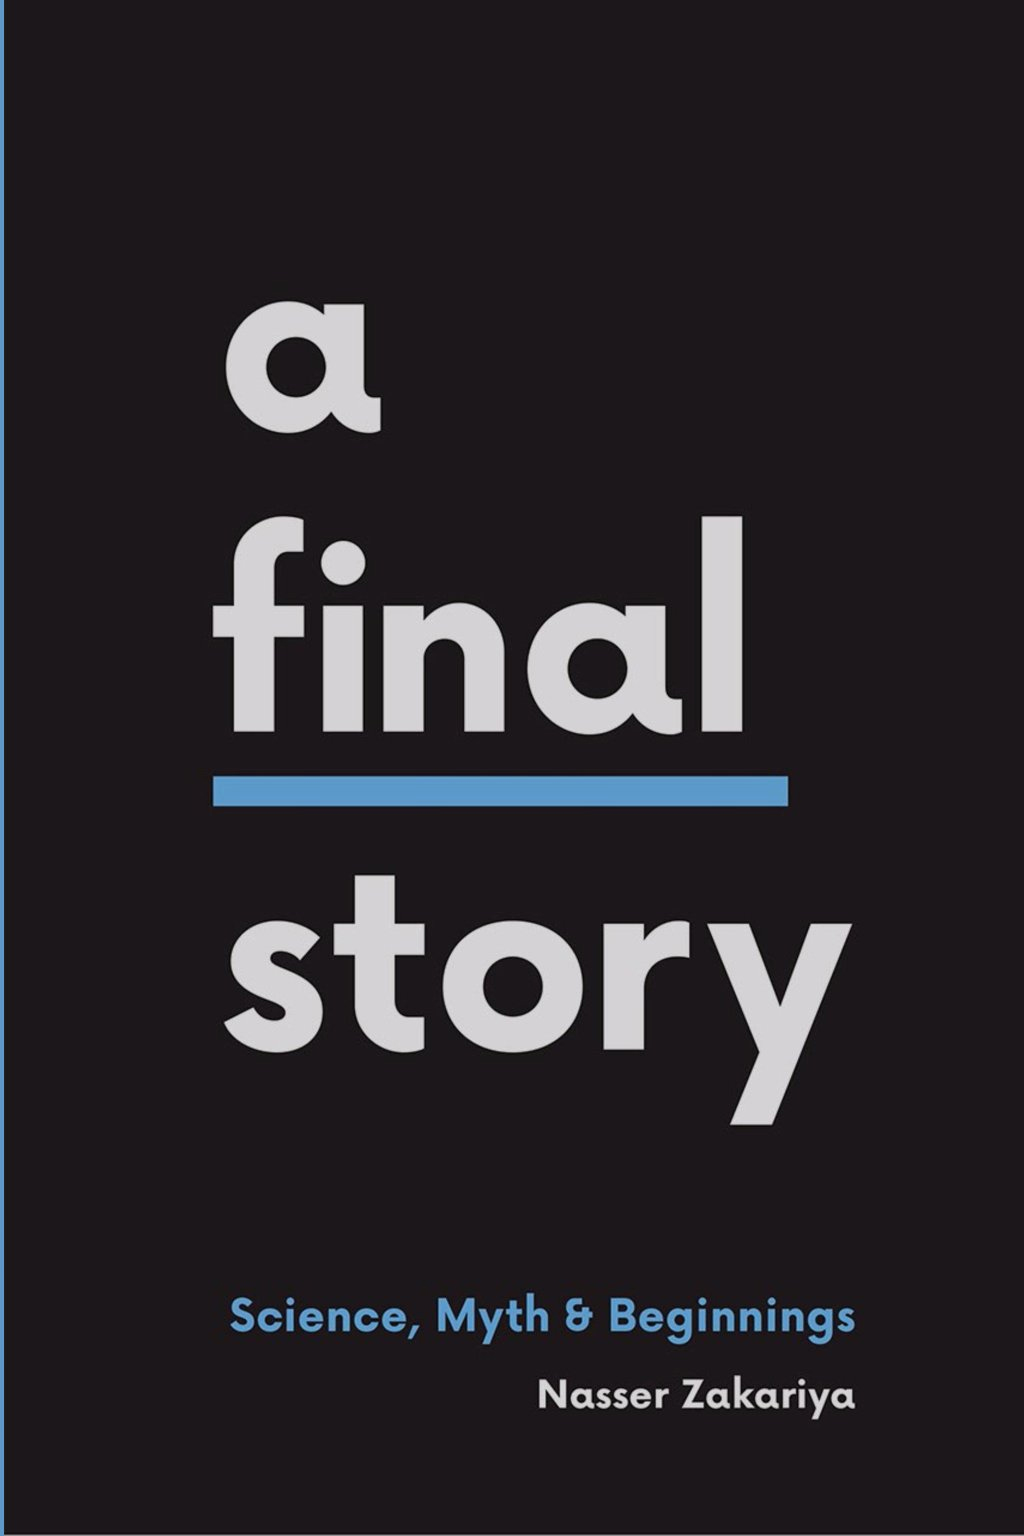 The Final Story